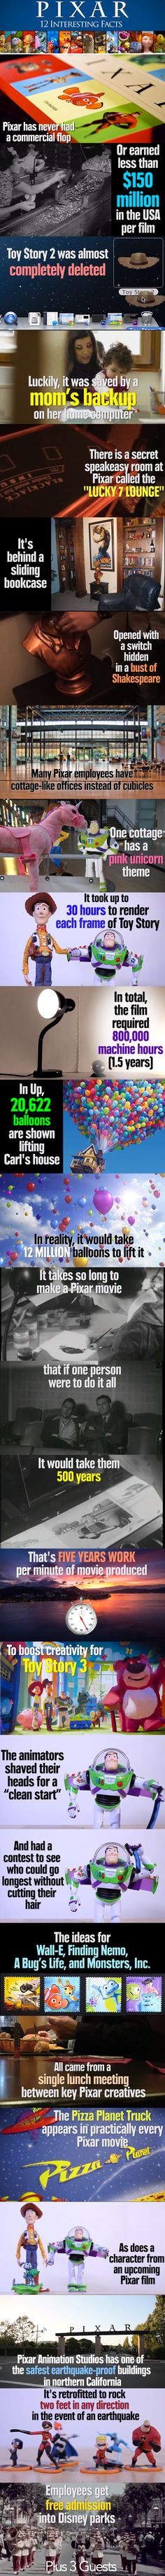 12 Interesting Facts about Disney's Pixar. Omg. I'm working for Pixar someday.